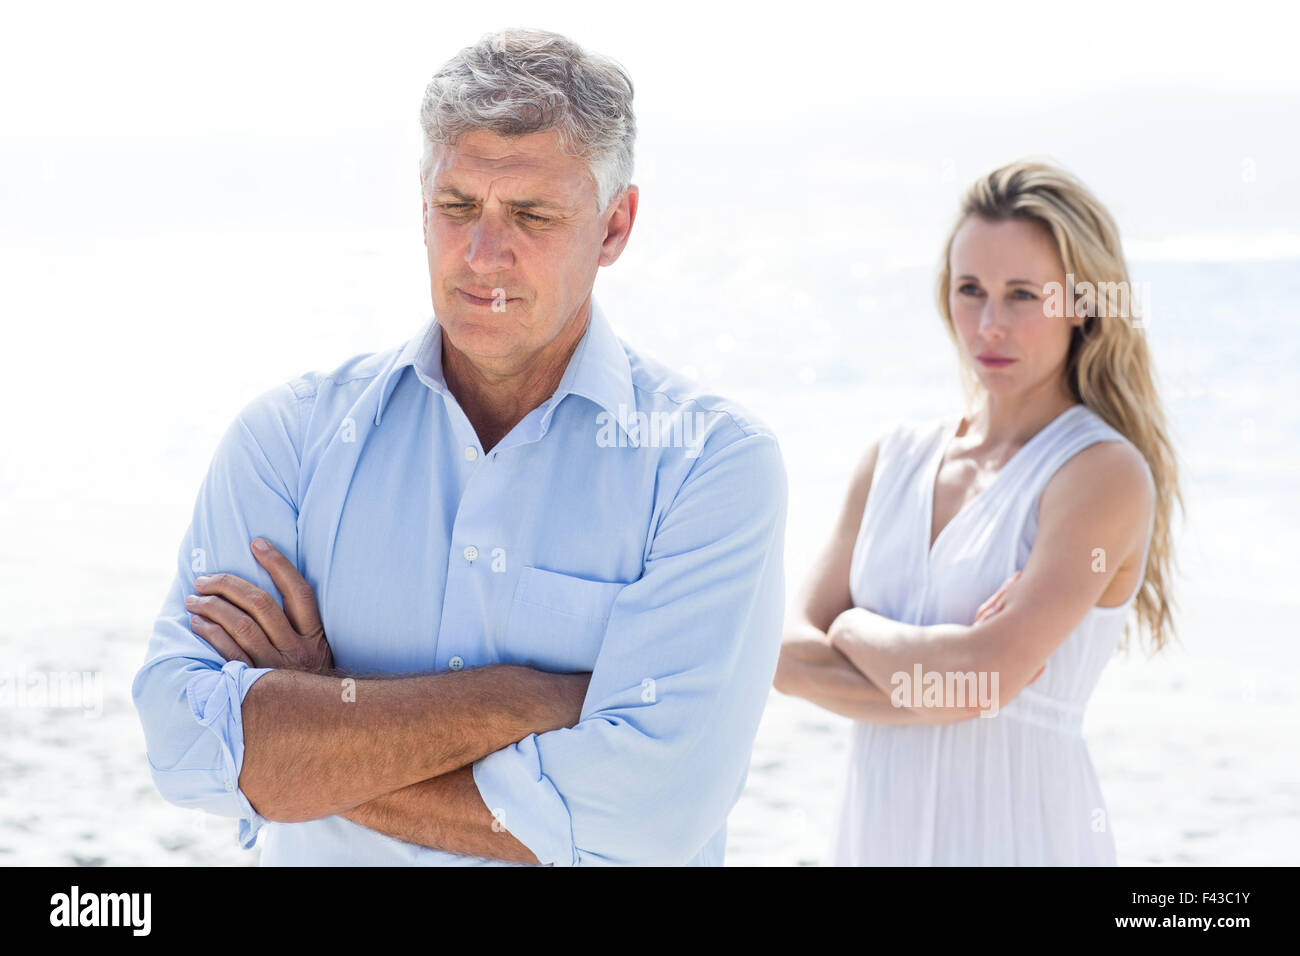 Upset couple having a disagreement - Stock Image